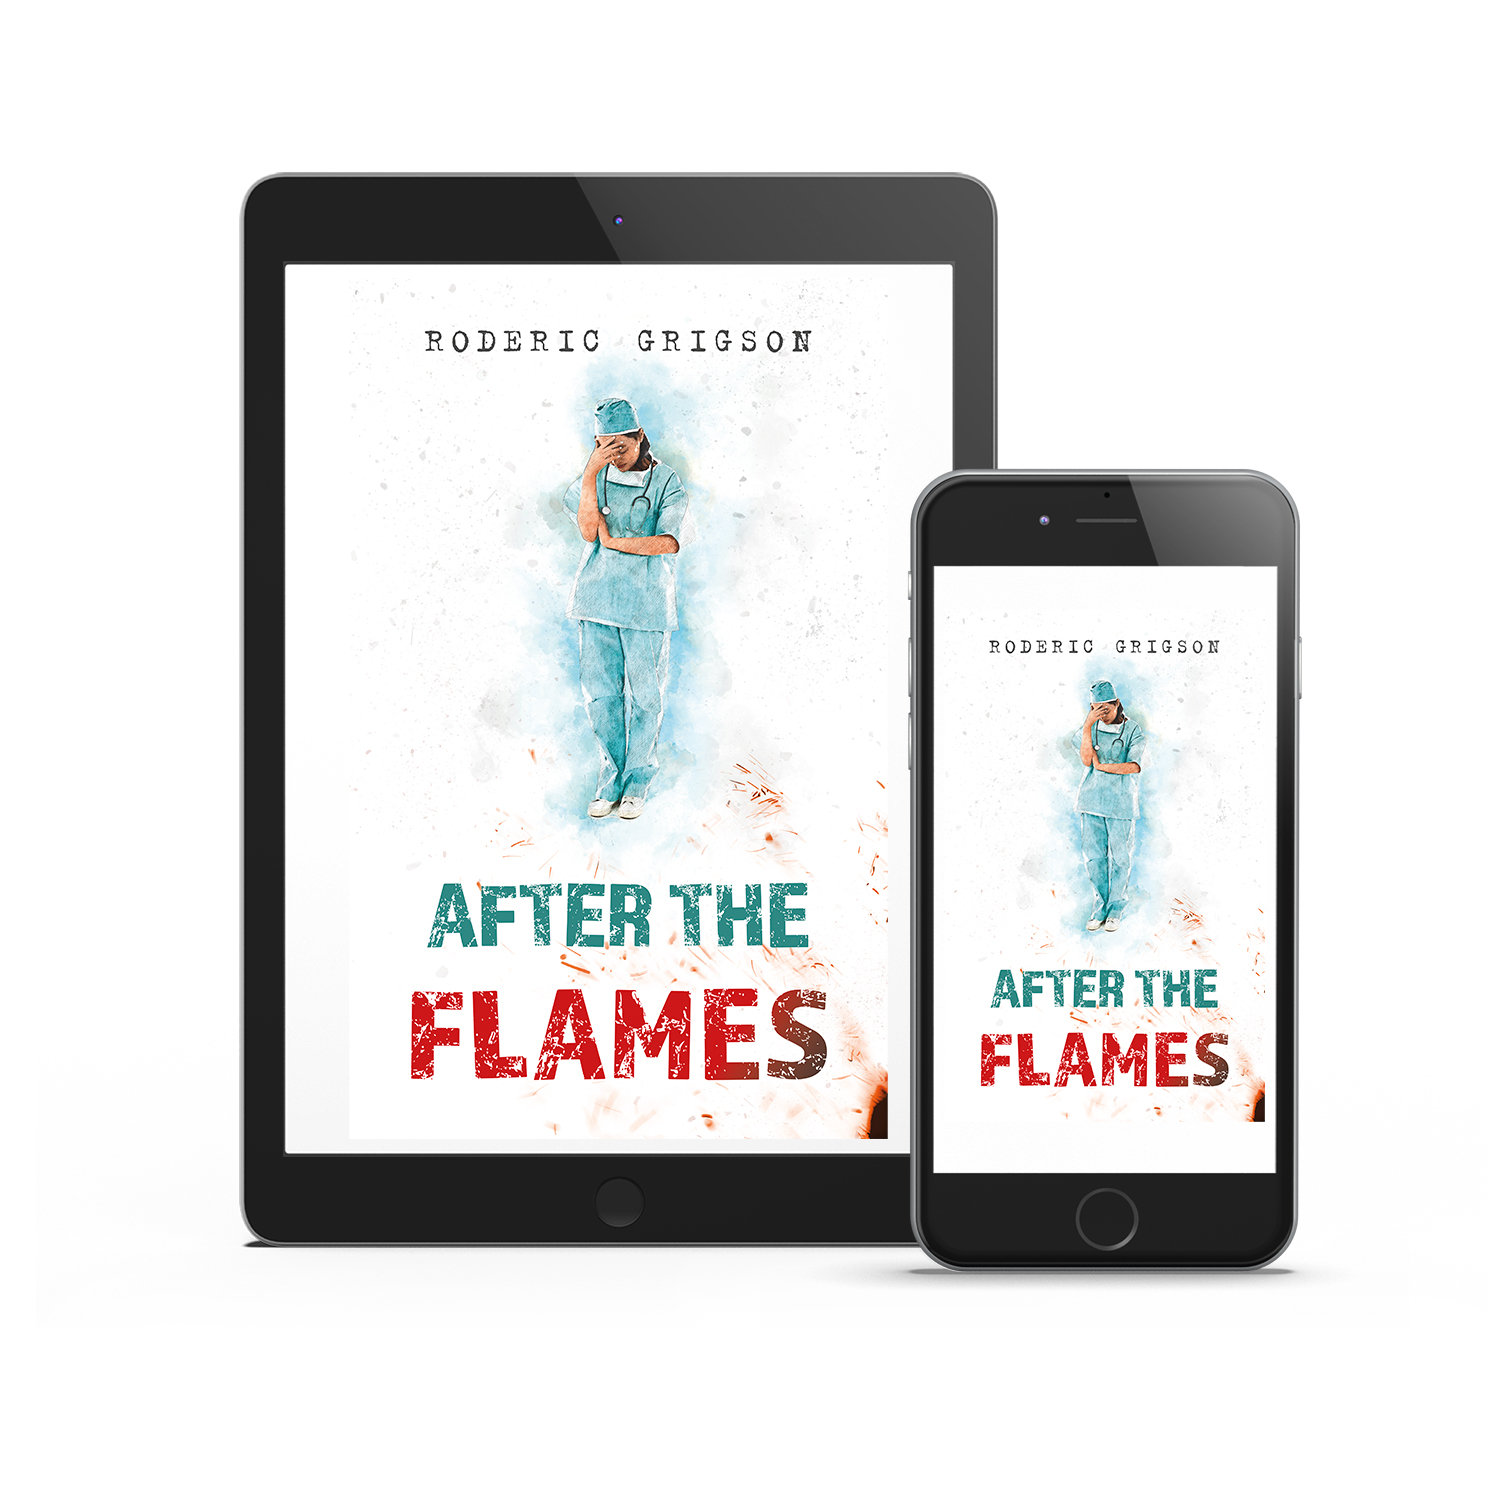 'After The Flames' is realistic dramatic novel by Roderic Grigson, set during the recent Sri Lankan Civil War. The book cover was designed by Mark Thomas, of coverness.com. To find out more about my book design services, please visit www.coverness.com.